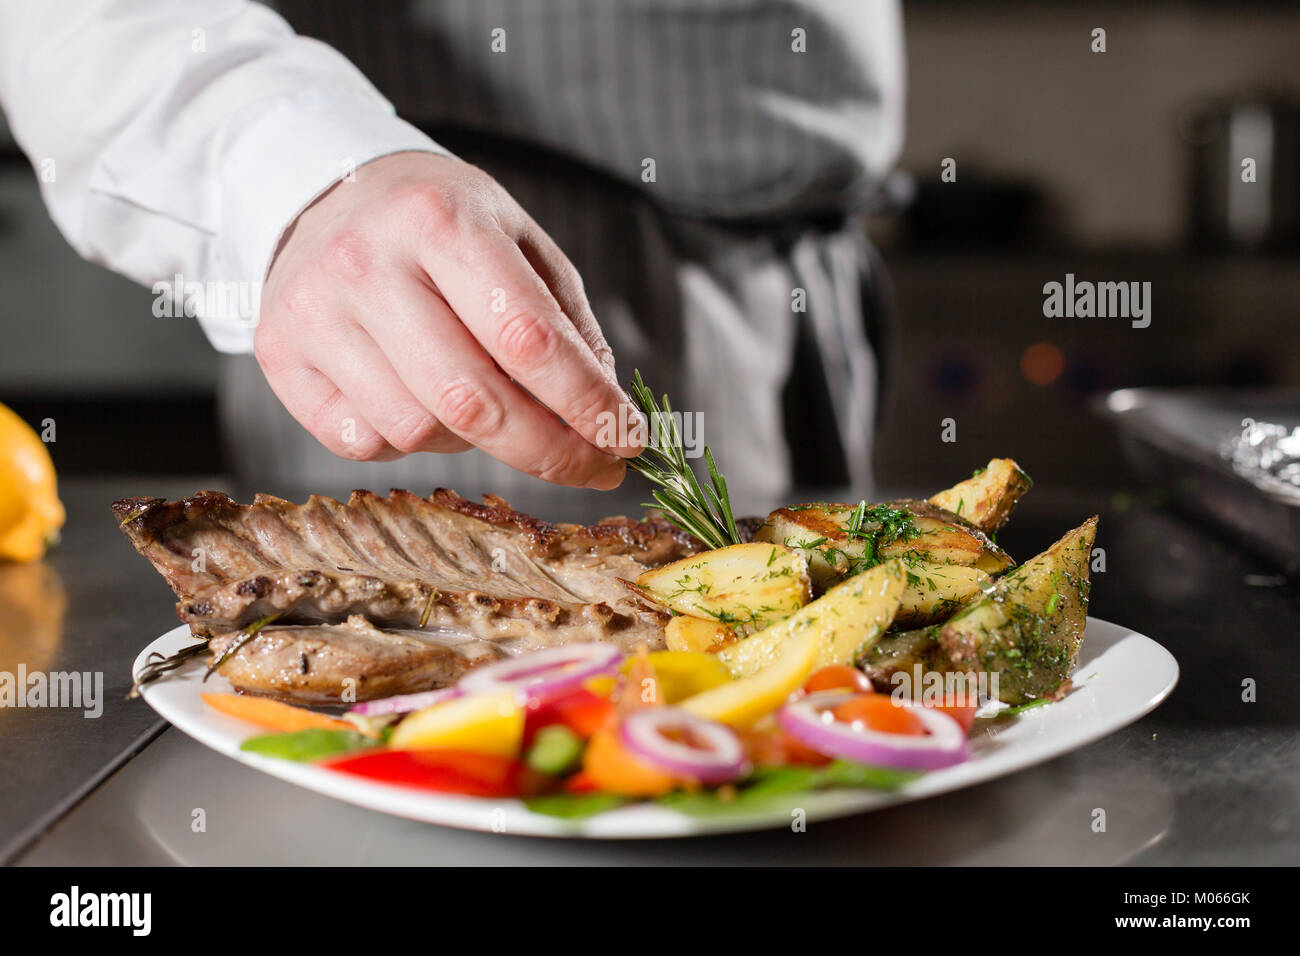 the chef prepares in the restaurant. Grilled rack of lamb with fried potatoes and fresh vegetables. closeup - Stock Image